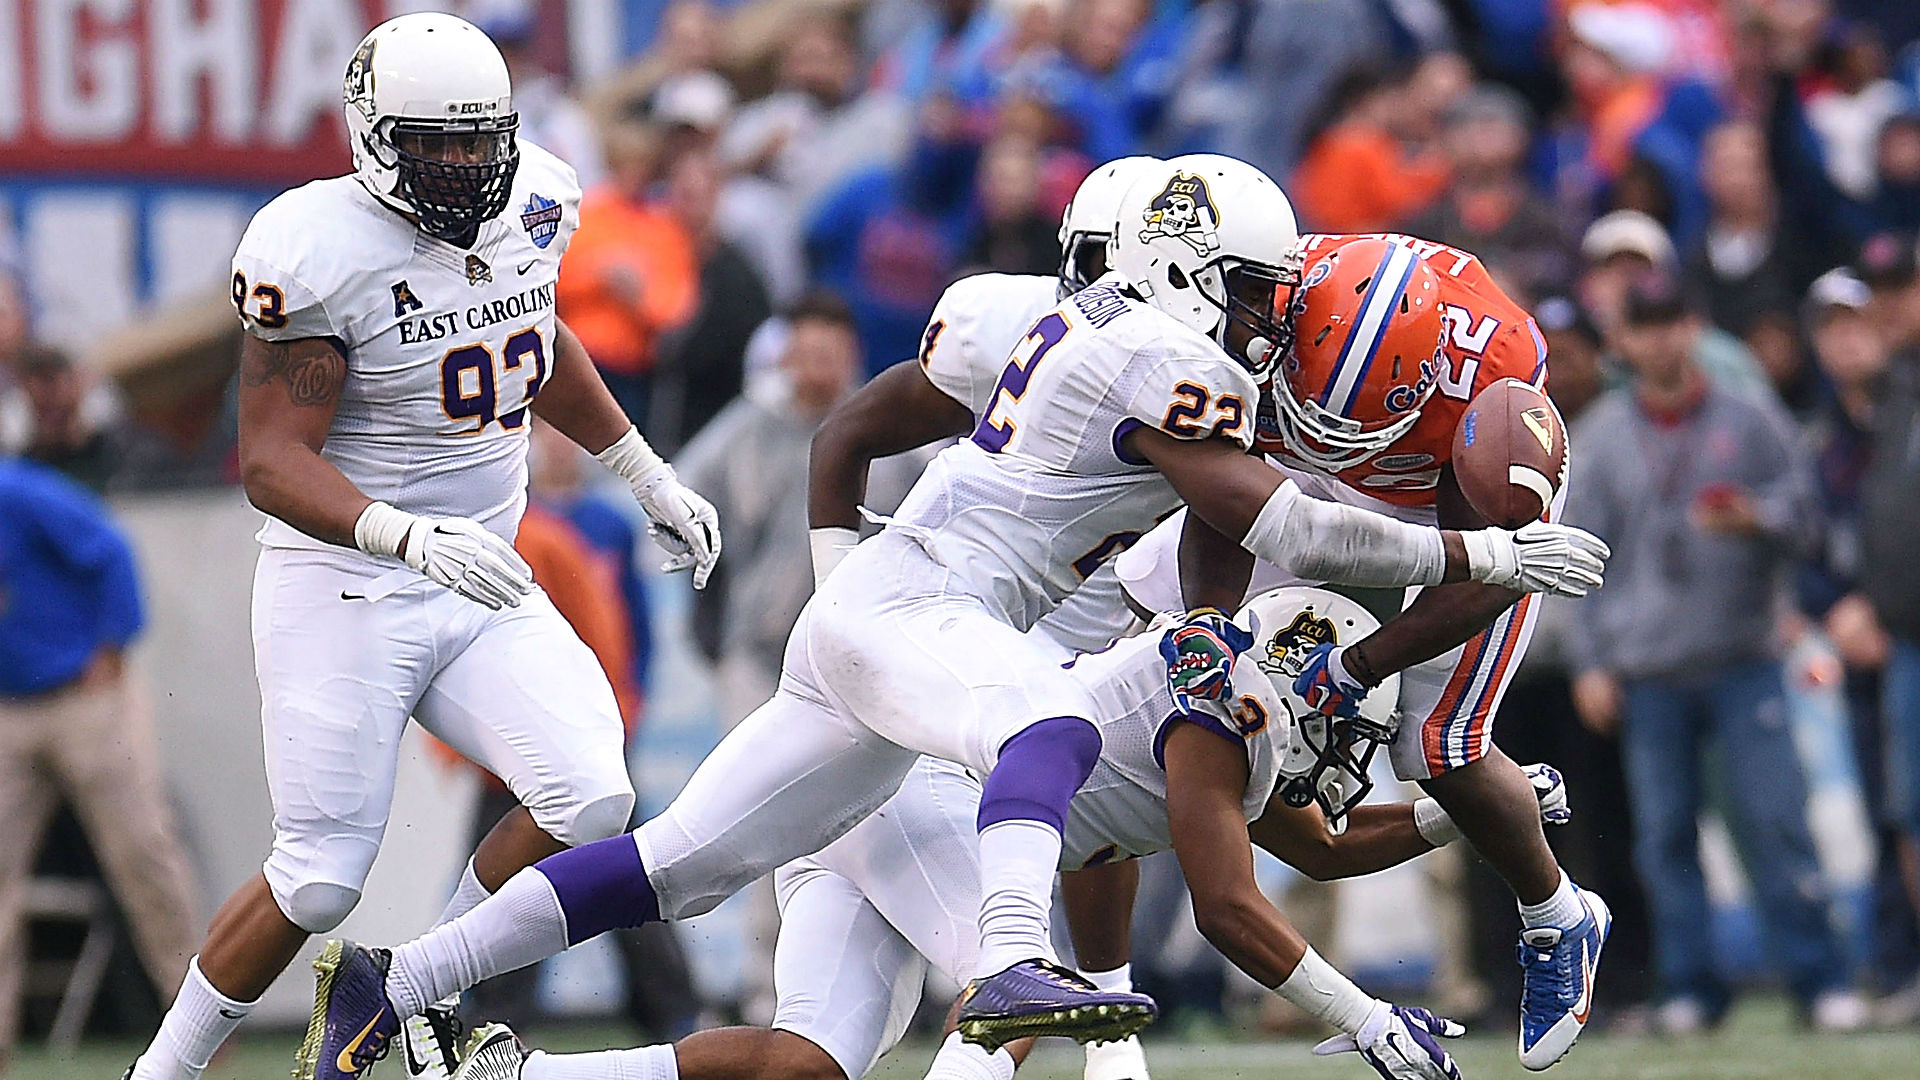 East Carolina at Central Florida betting lines and pick — Pirates double-digit favorites